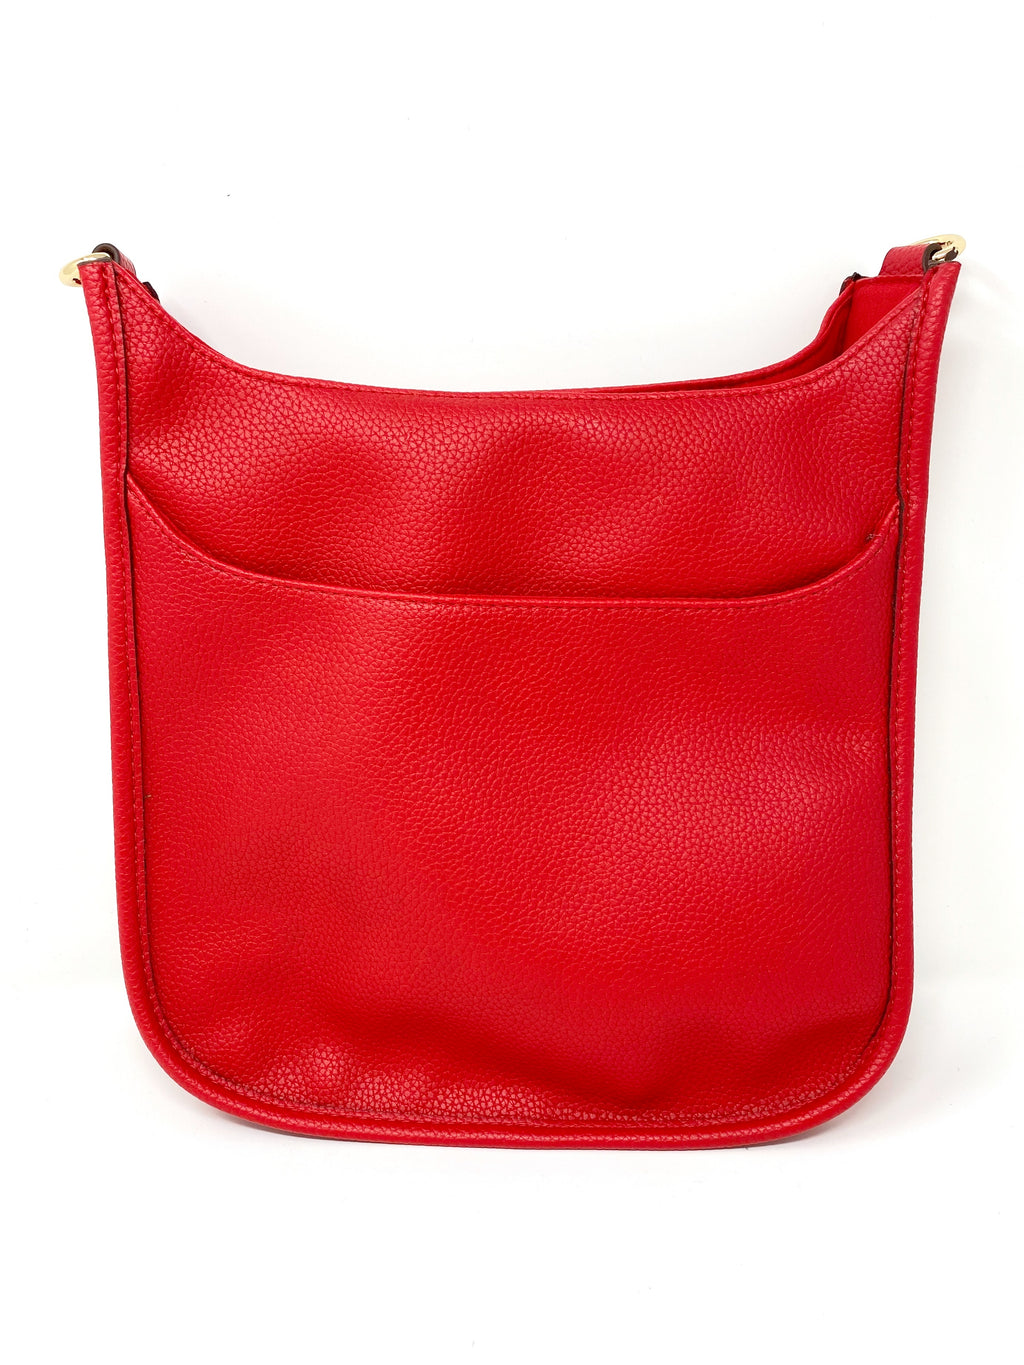 Saddle Bag in Vegan Leather in Very Red